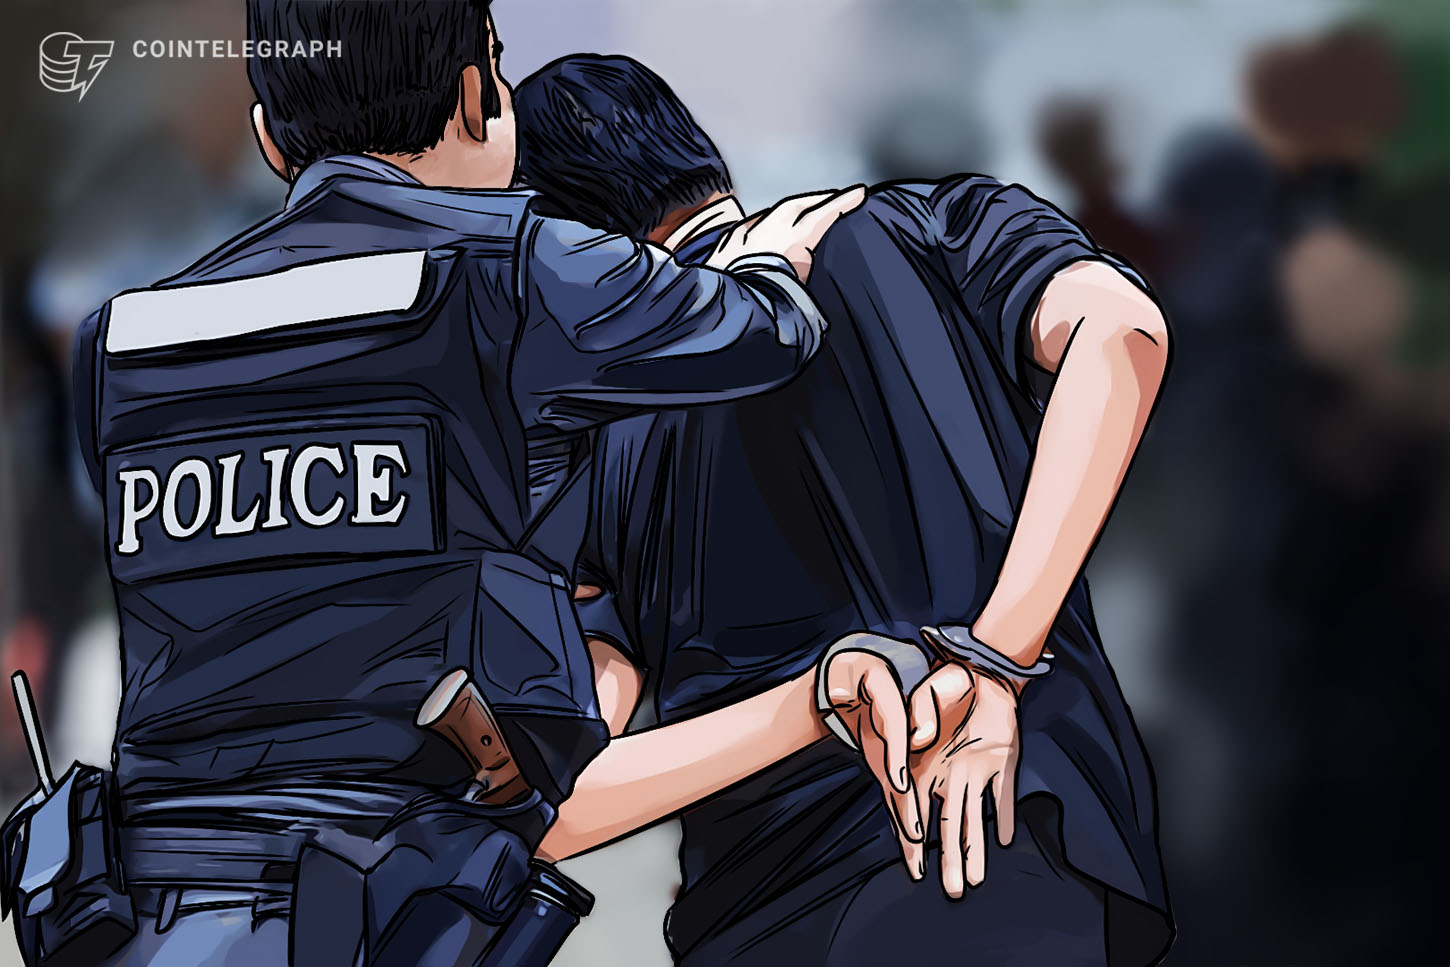 Monero's former maintainer arrested in U.S. for allegations unrelated to cryptocurrency